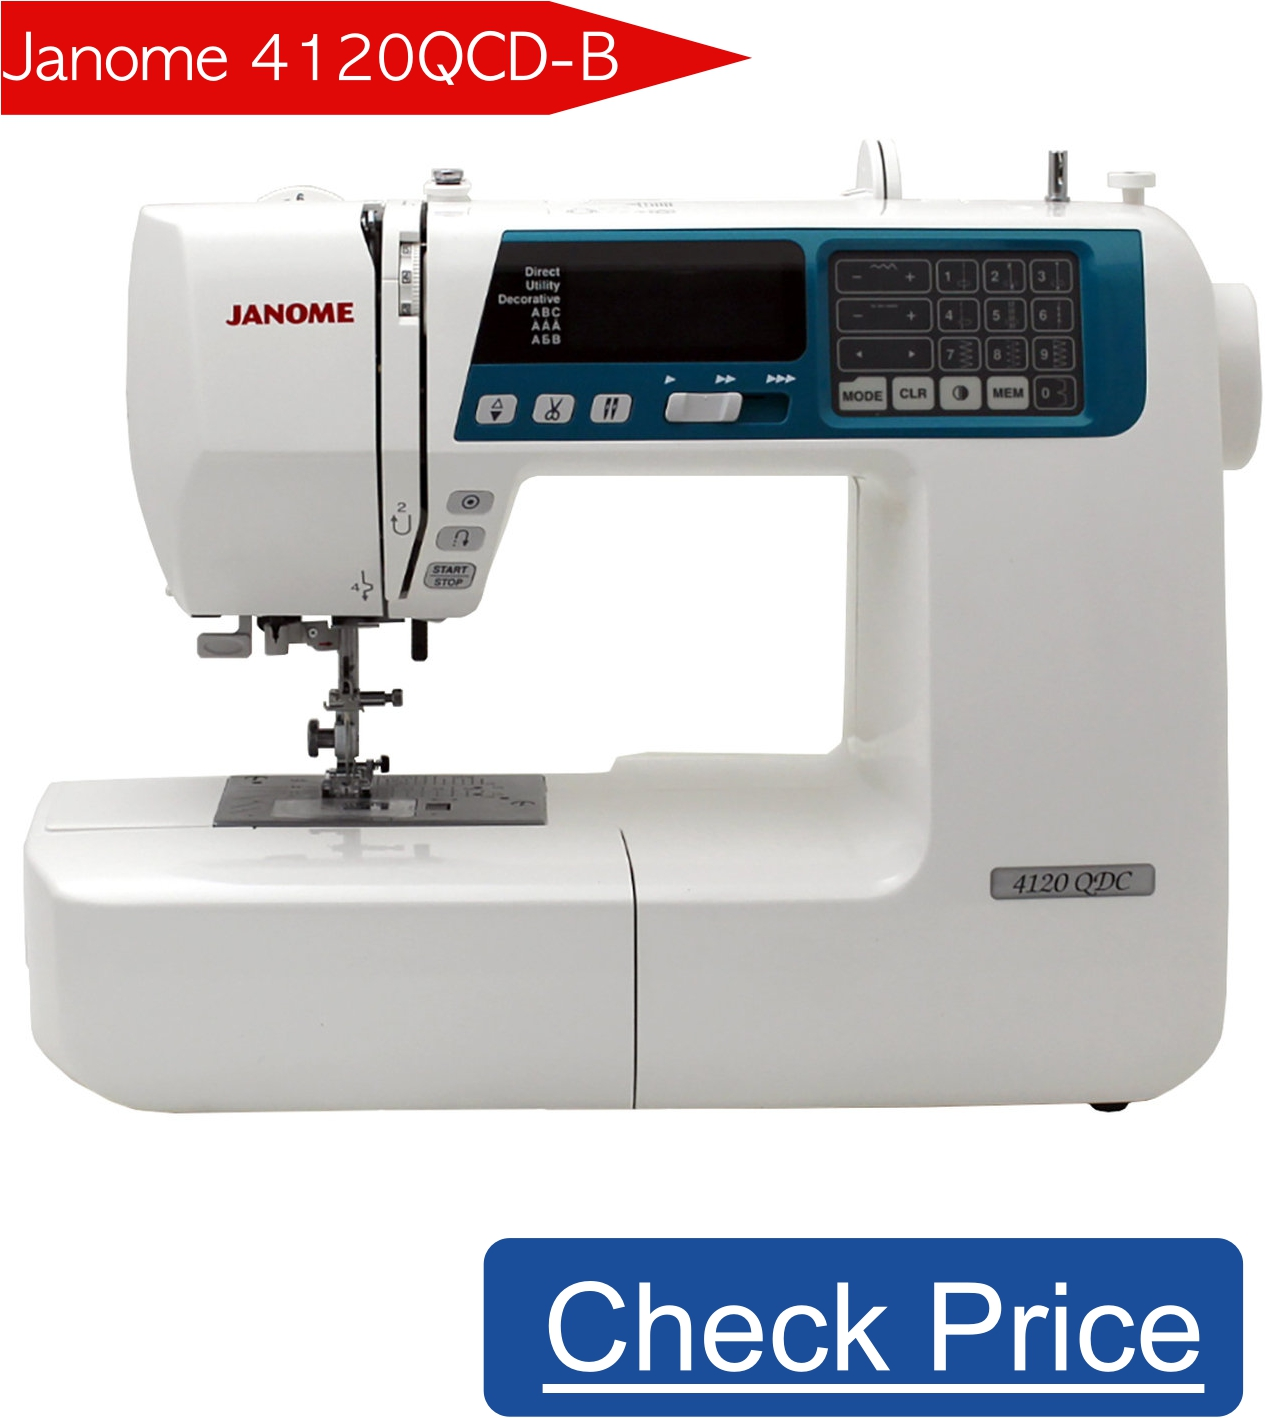 Best 5 Janome Sewing Machines to Buy | Best Sewing ...